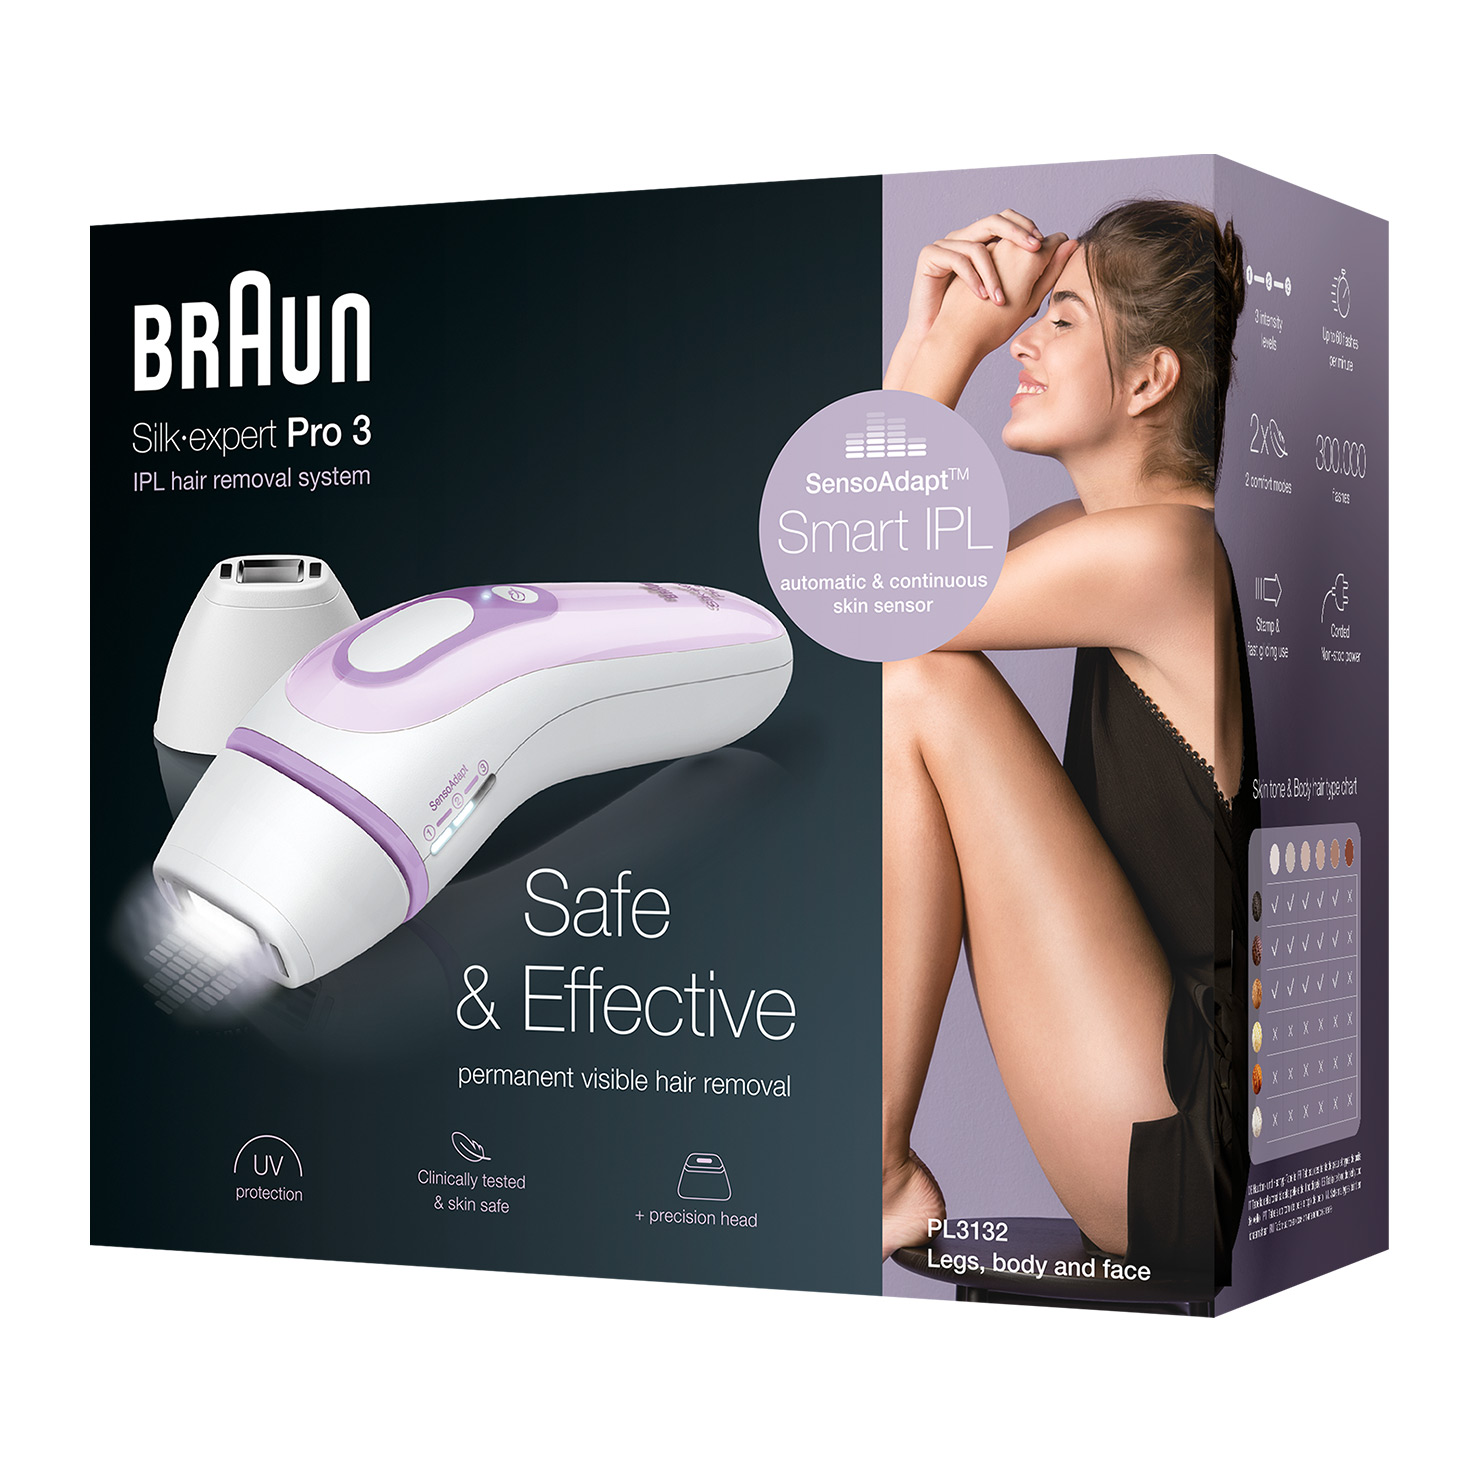 Braun Silk-expert Pro 3 PL3132 - Packaging